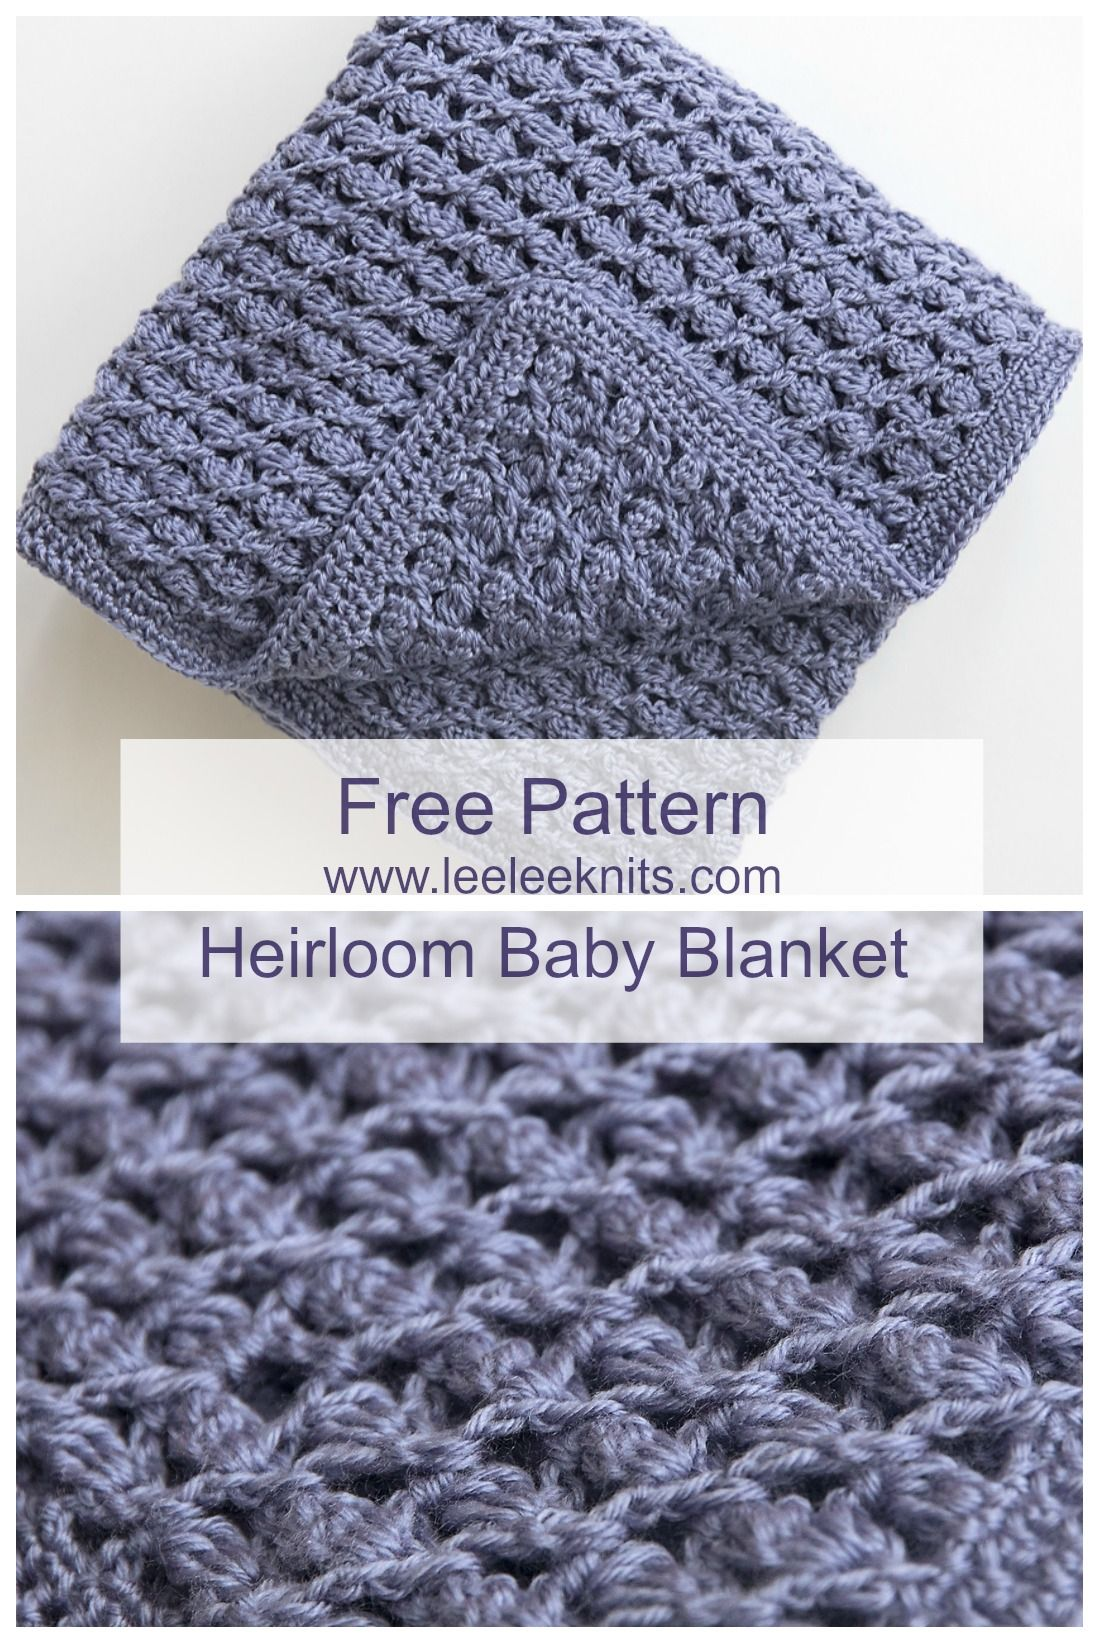 Free Heirloom Baby Blanket Crochet Pattern Crochet Crochet